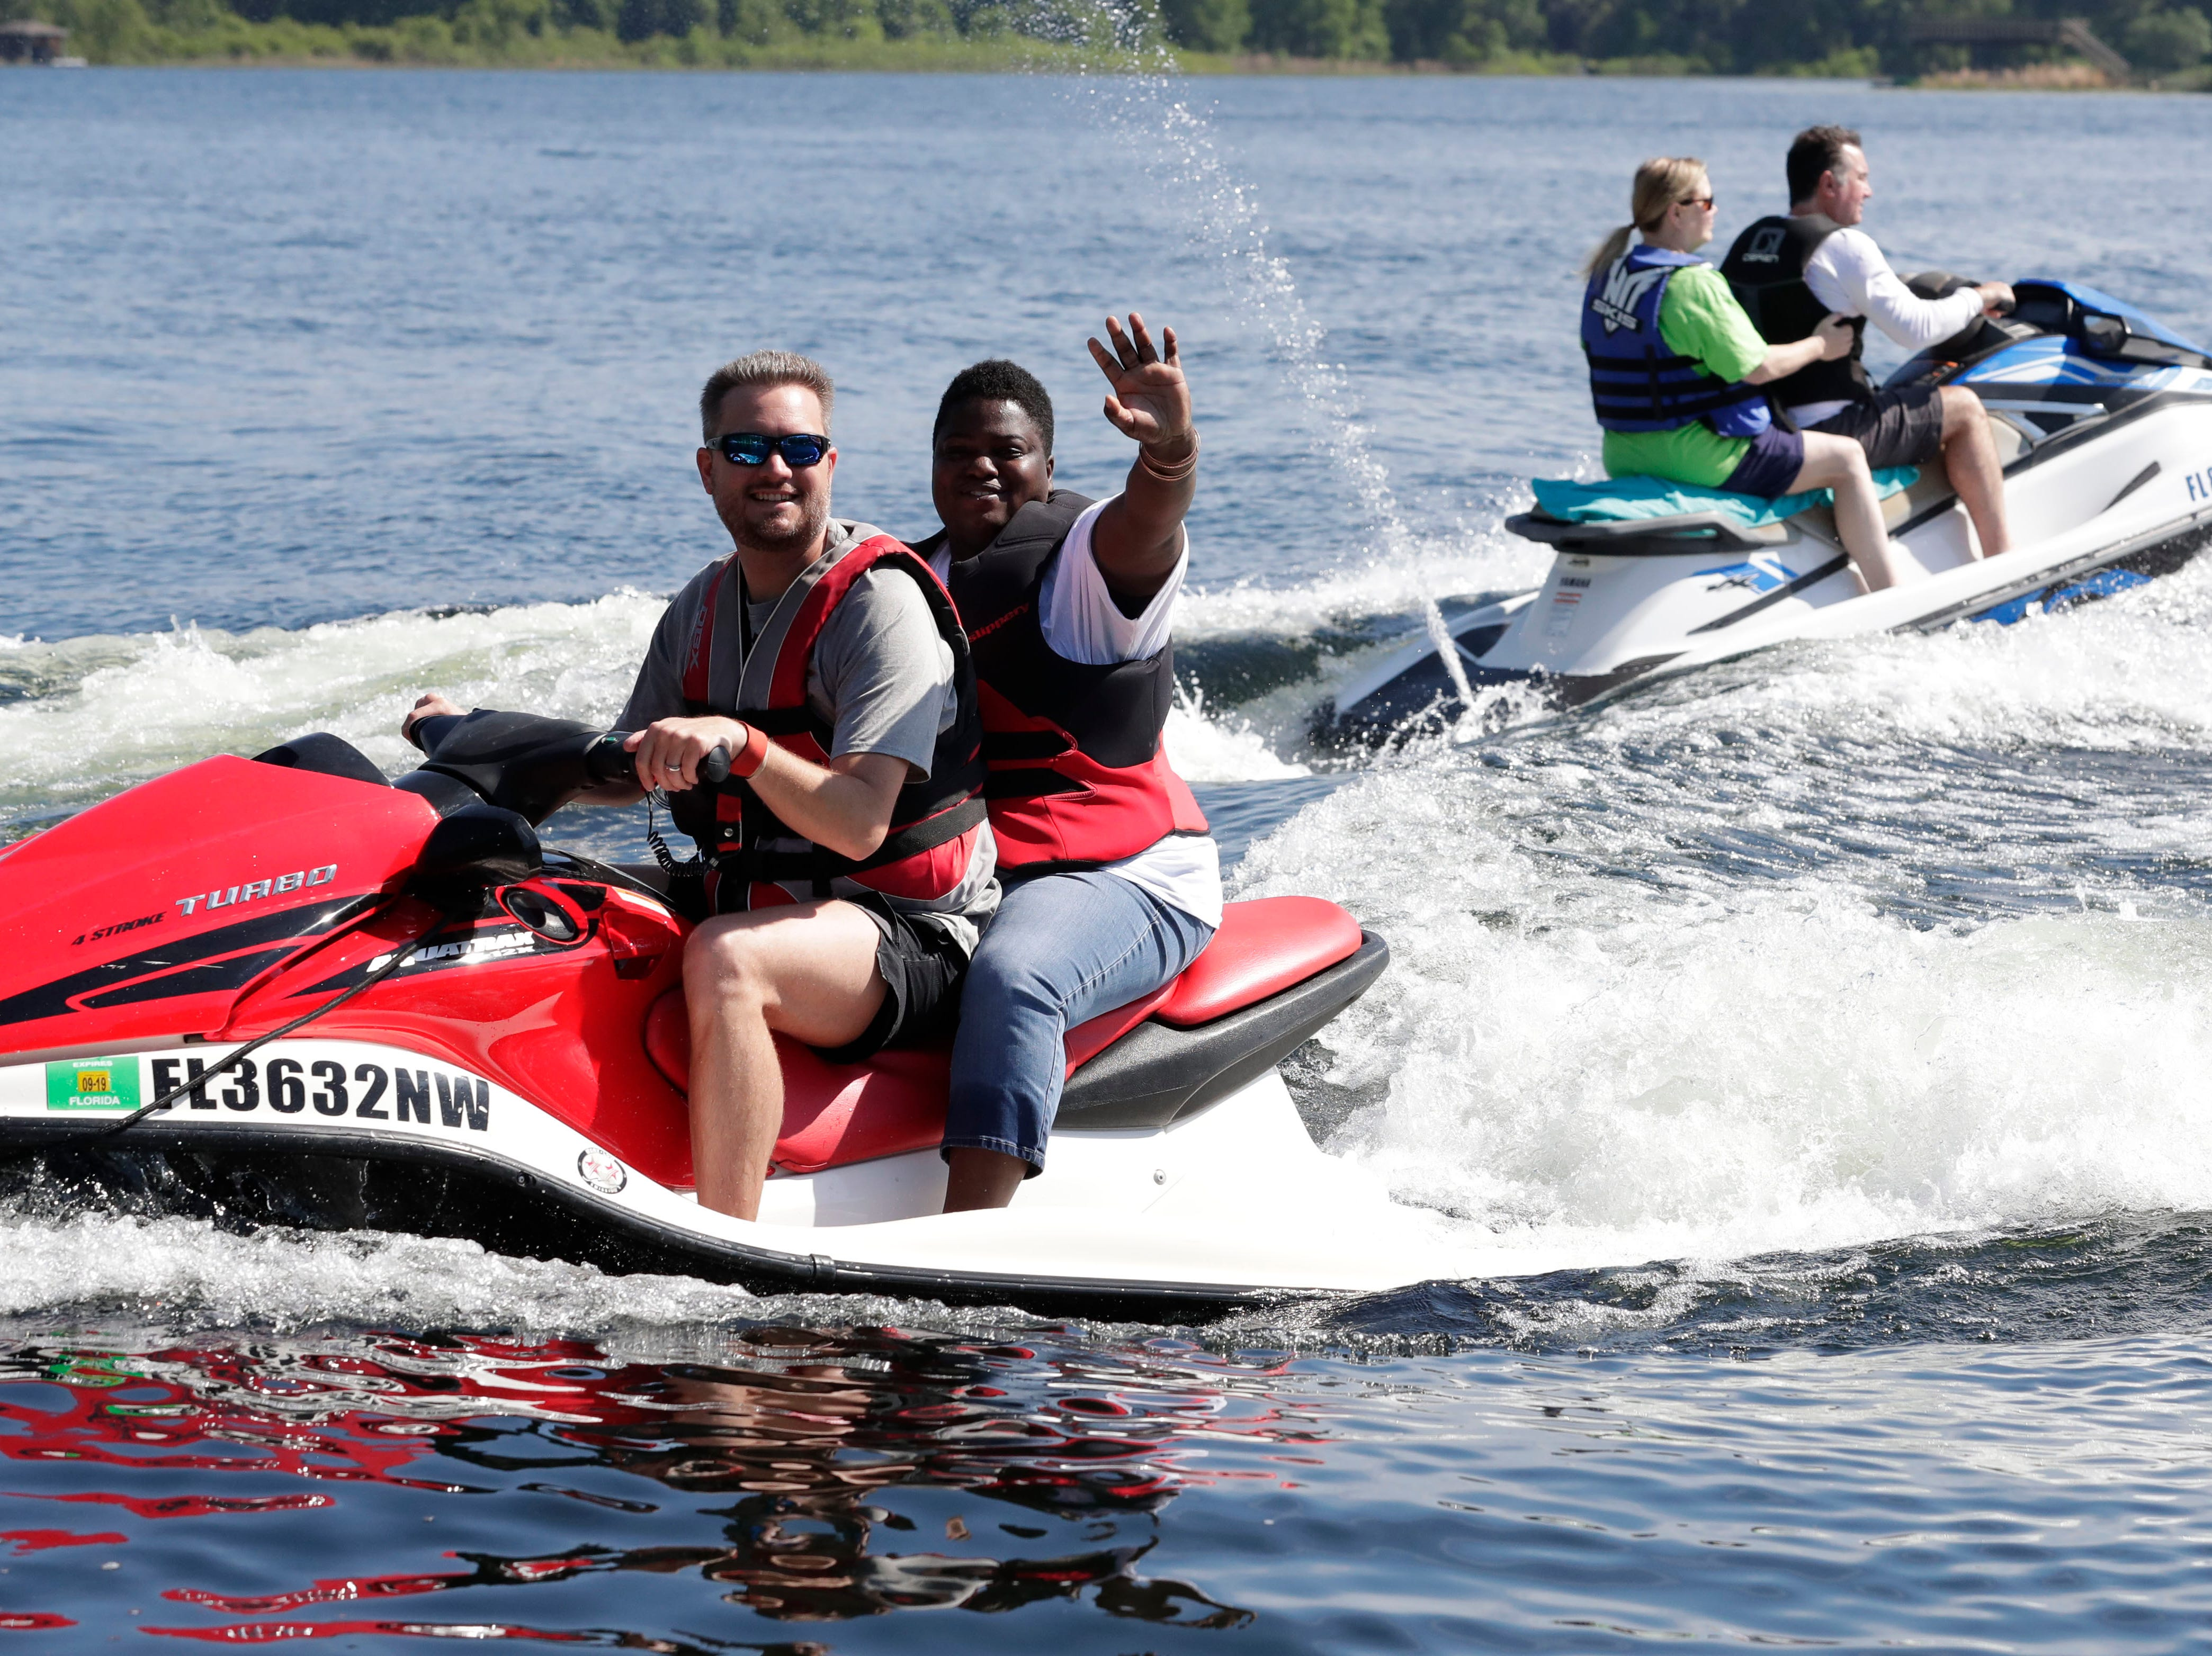 Participants had the opportunity to jet ski during SportsAbility, a program with the Florida Disabled Outdoors Association, at Maclay Garden State Park Saturday,  April 13, 2019.